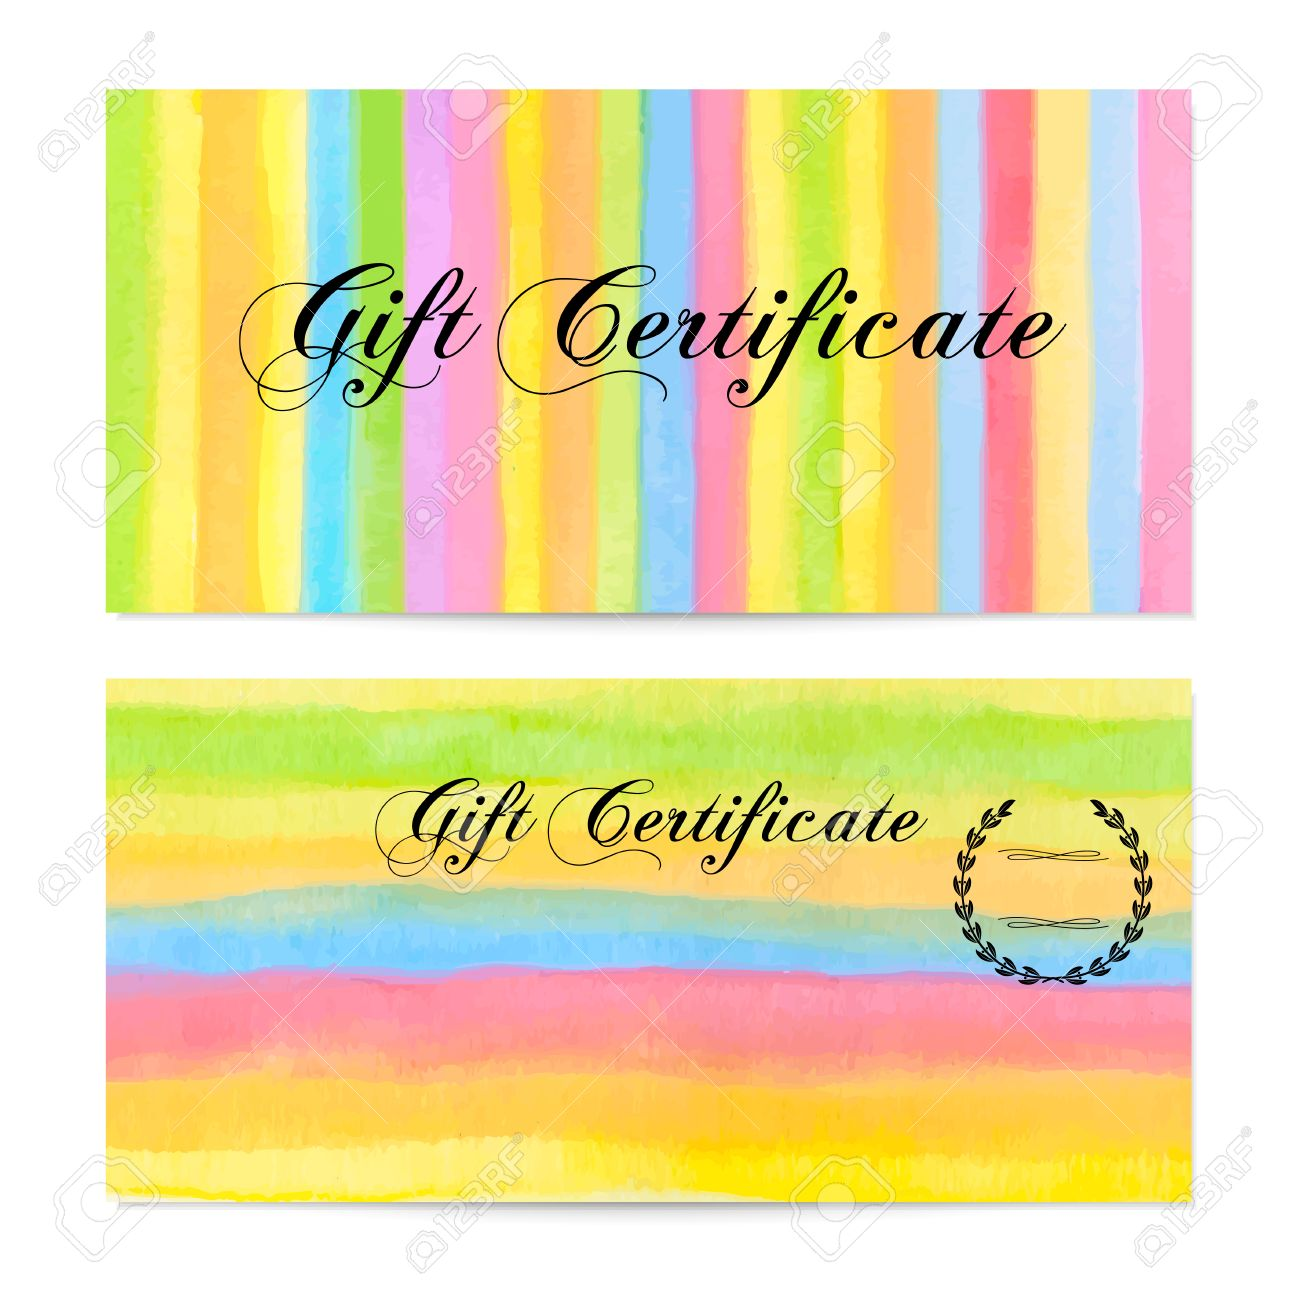 gift certificate voucher coupon gift money bonus gift card gift certificate voucher coupon gift money bonus gift card template colorful